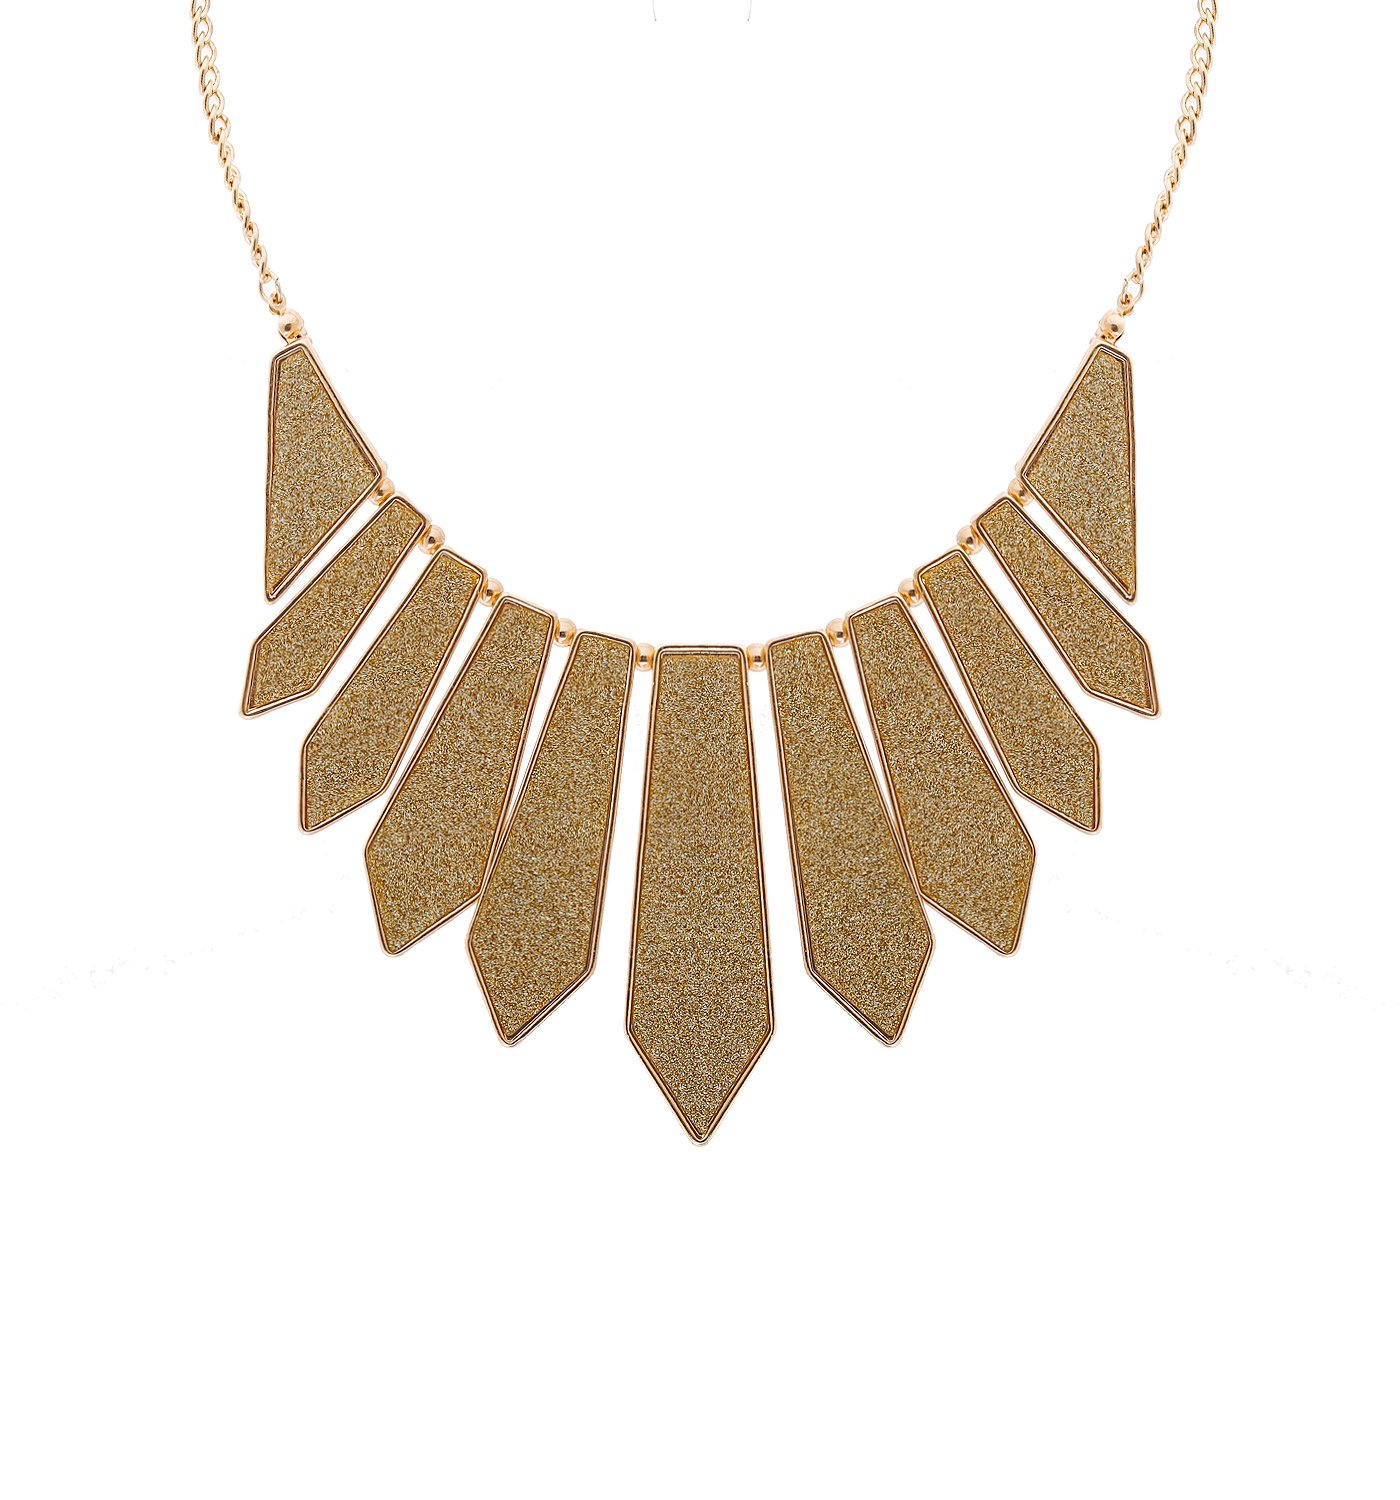 HSWE Collar Necklace for Women Charms Bib Pendant Necklace for Girls (gold)